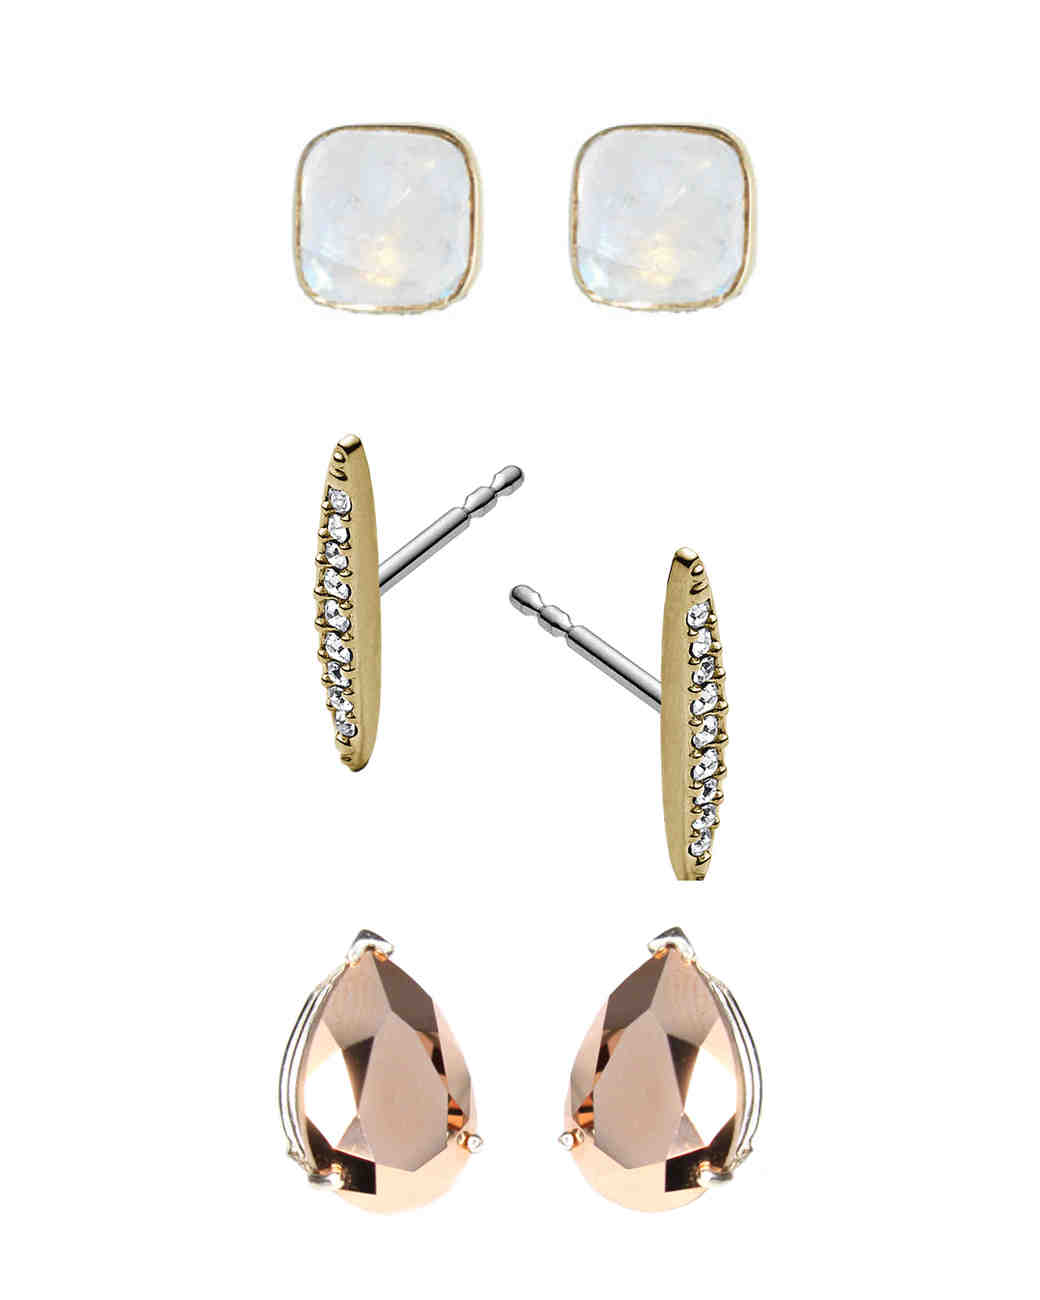 bridal-accessories-under-100-stud-earrings-0714.jpg